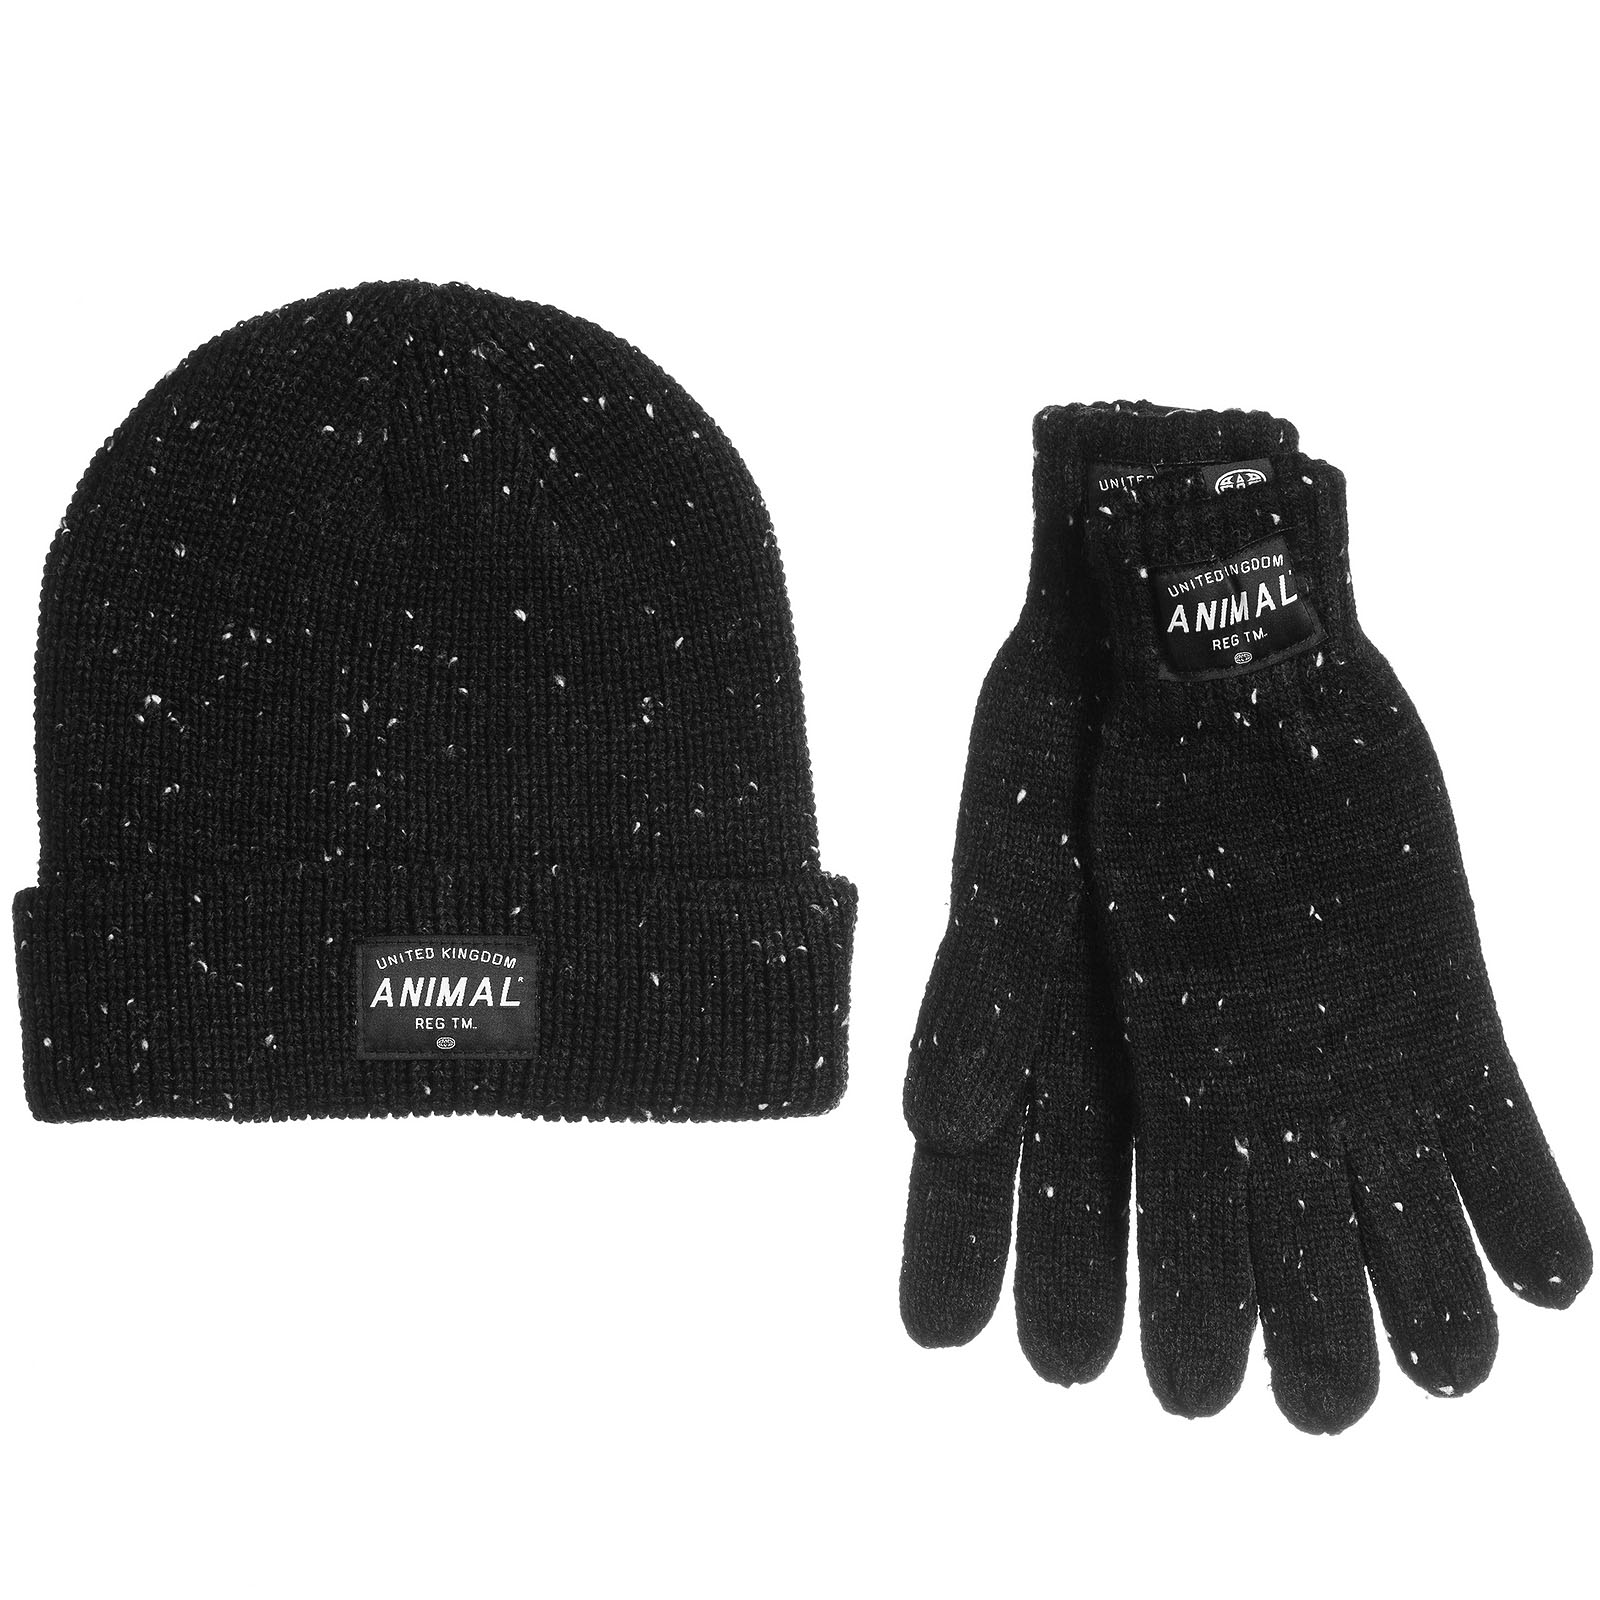 Details about Animal Mens Falcann Allex Winter Knitted Hat And Gloves Set -  Black - OS 9718524ab67d